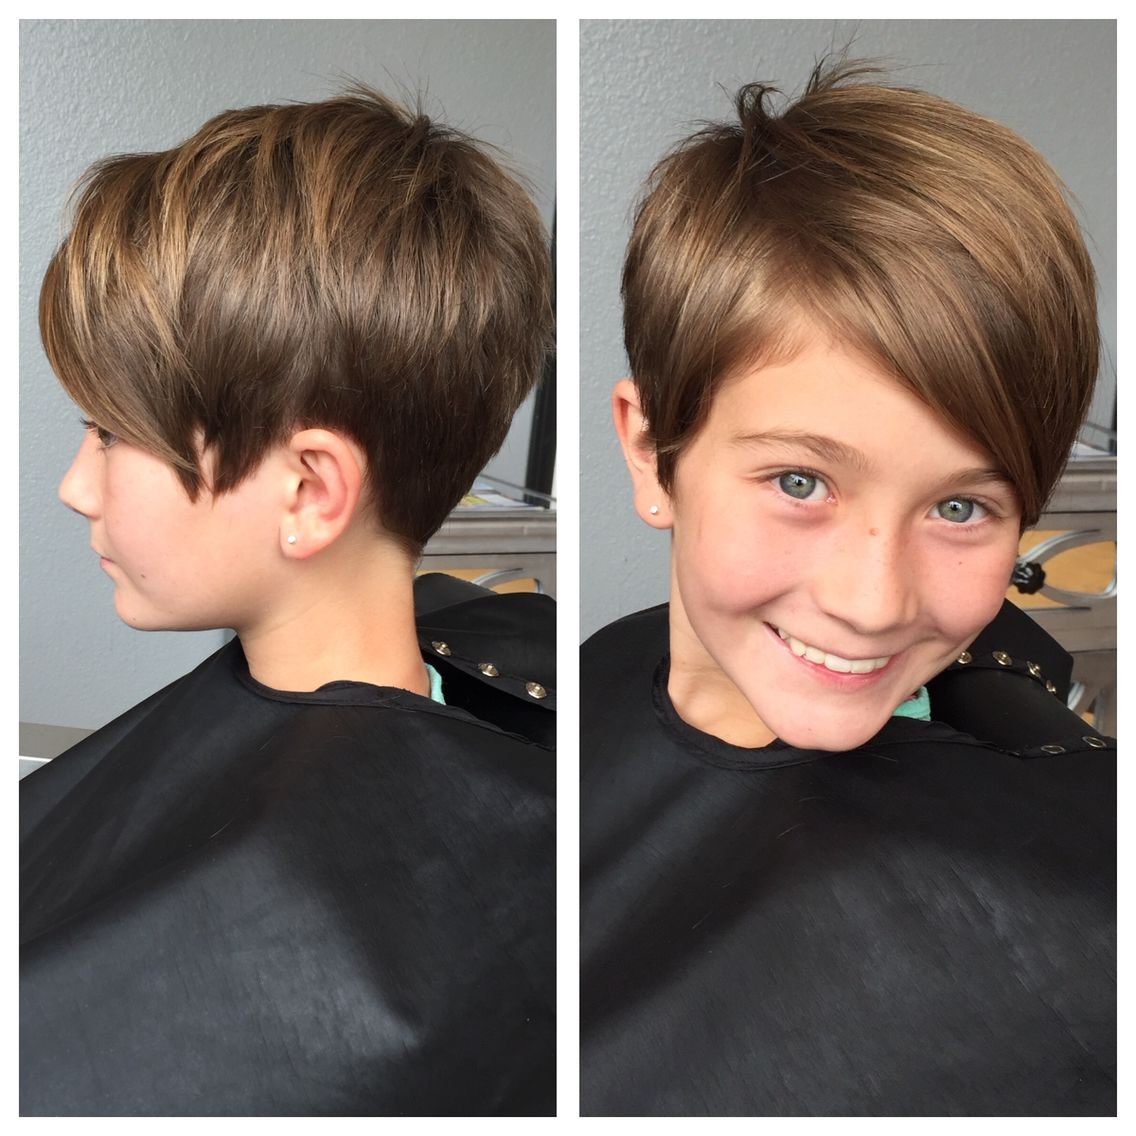 Kids Pixie Haircut | Hair In 2018 | Pinterest | Hair, Hair Cuts And Within Kids Short Haircuts With Bangs (View 10 of 25)